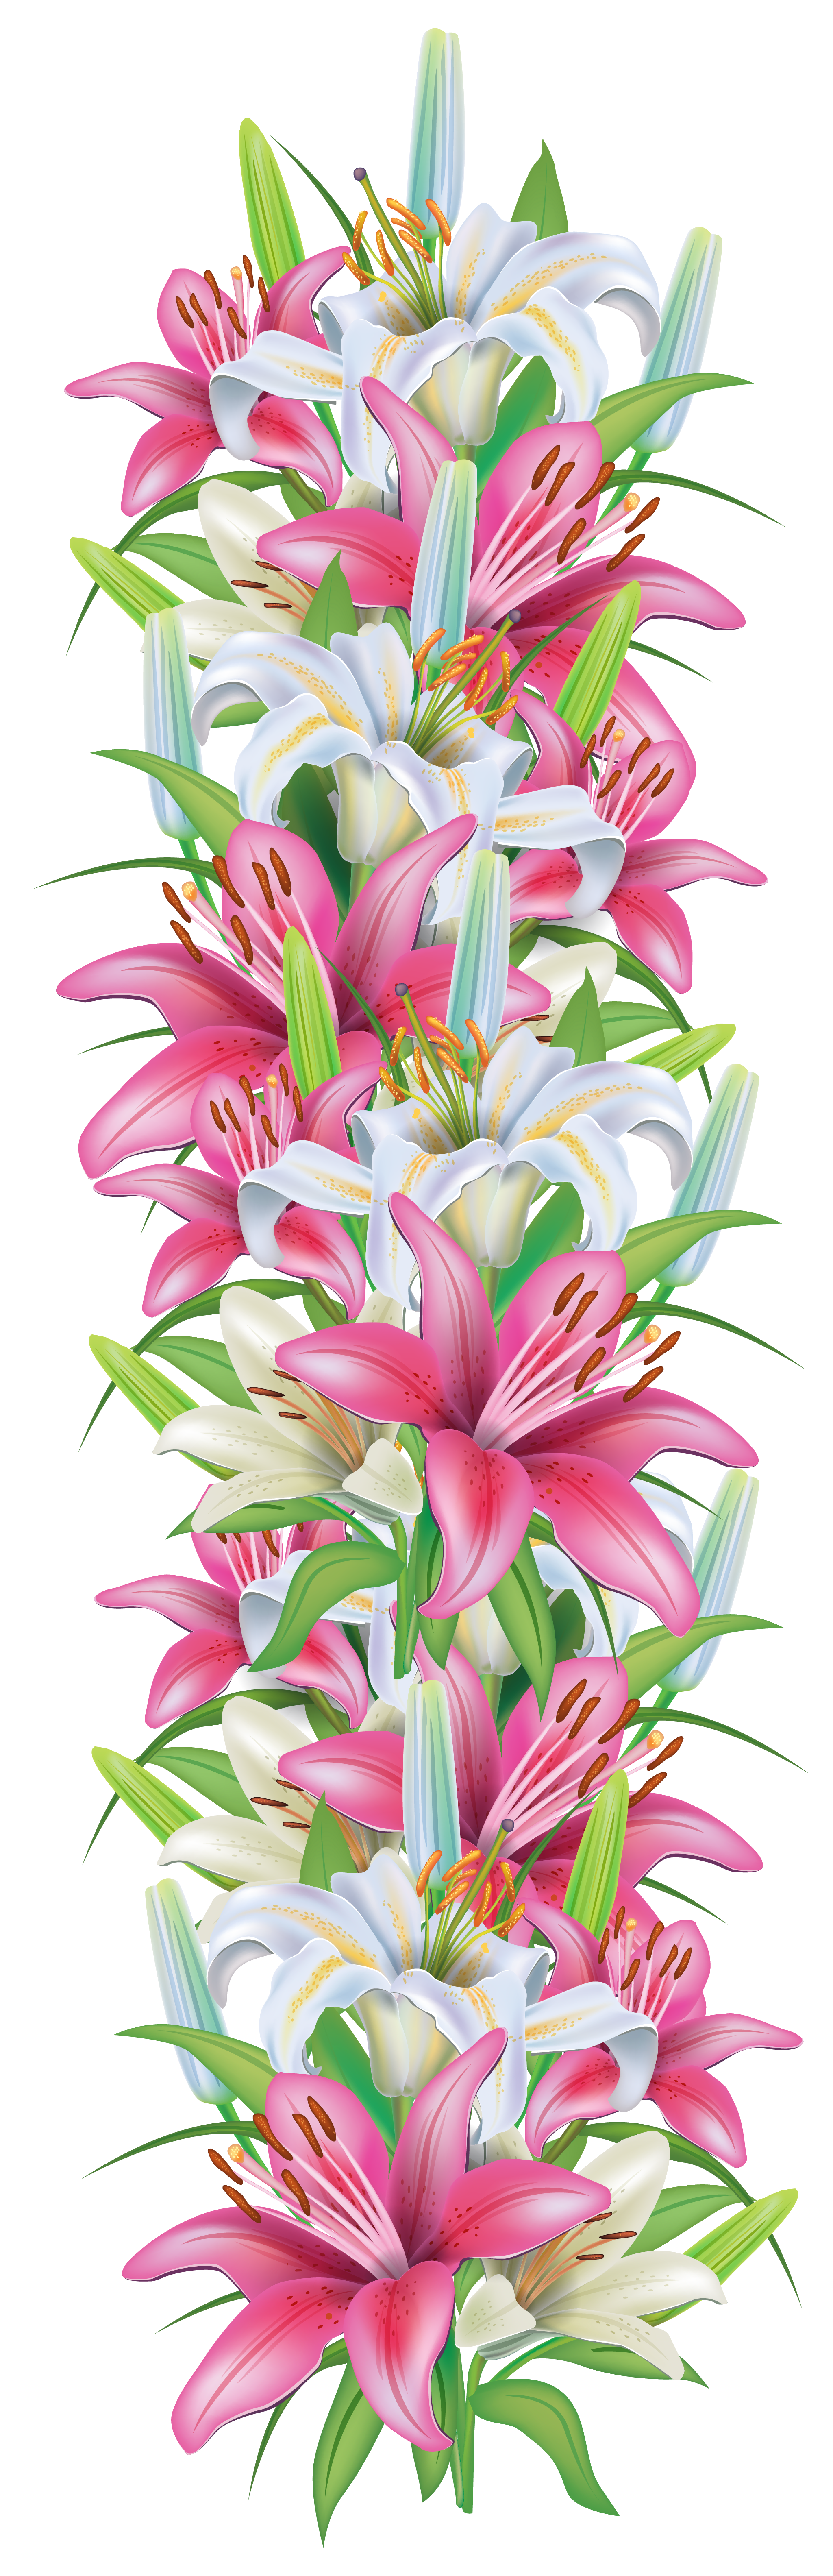 Vertical flower border clipart graphic library Pink and White Lilies Decoration Border PNG Clipart Image | Színes ... graphic library